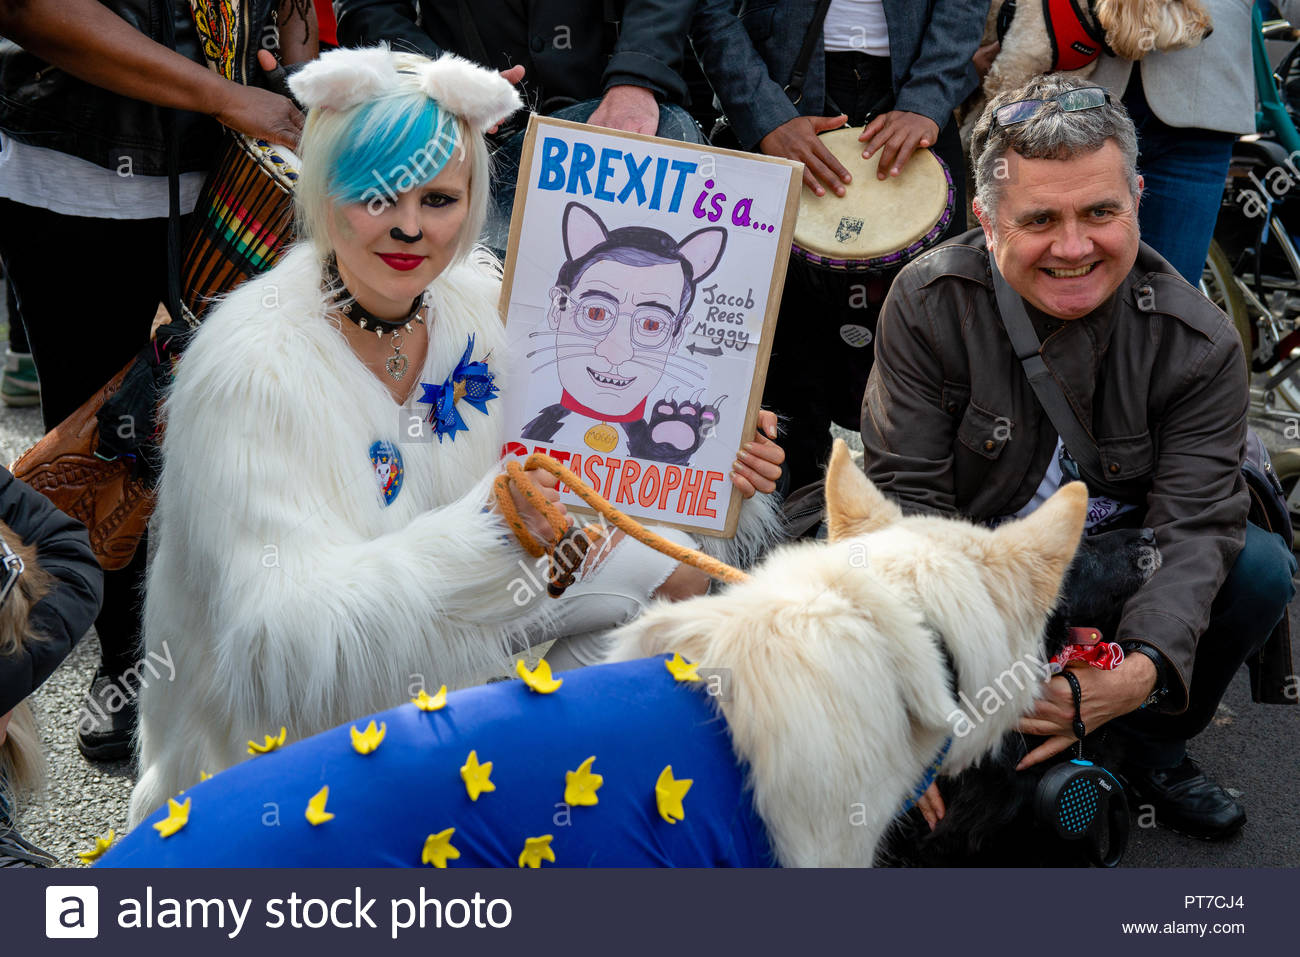 London, UK. 7th Oct 2018. Madeleina Kay (EU Supergirl). Dog owners gather for a massive 'walkies' to protest against Brexit.   This fun event organised by Wooferendum was entirely self funded. Supporters include Dominic Dyer, Stella Creasy MP, and Felicity Kendall.  London, Great Britain, 07 Oct 2018 Credit: David Nash/Alamy Live News - Stock Image